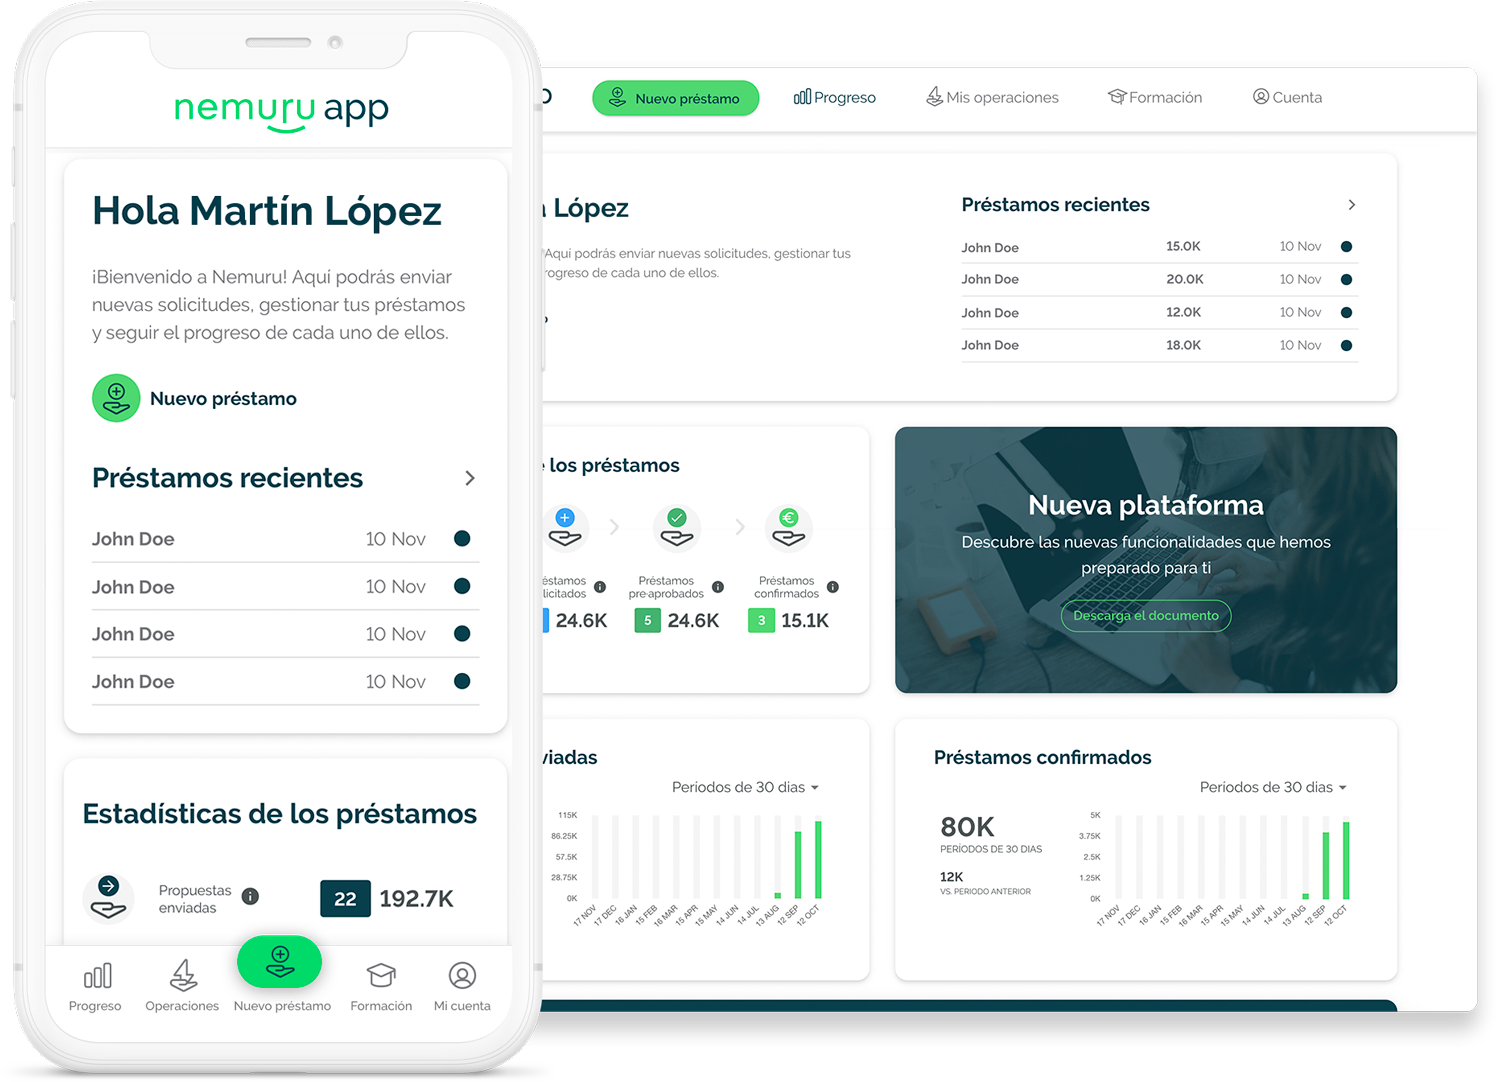 Nemuru - Nemuru gestiona<br/>la financiacion por ti